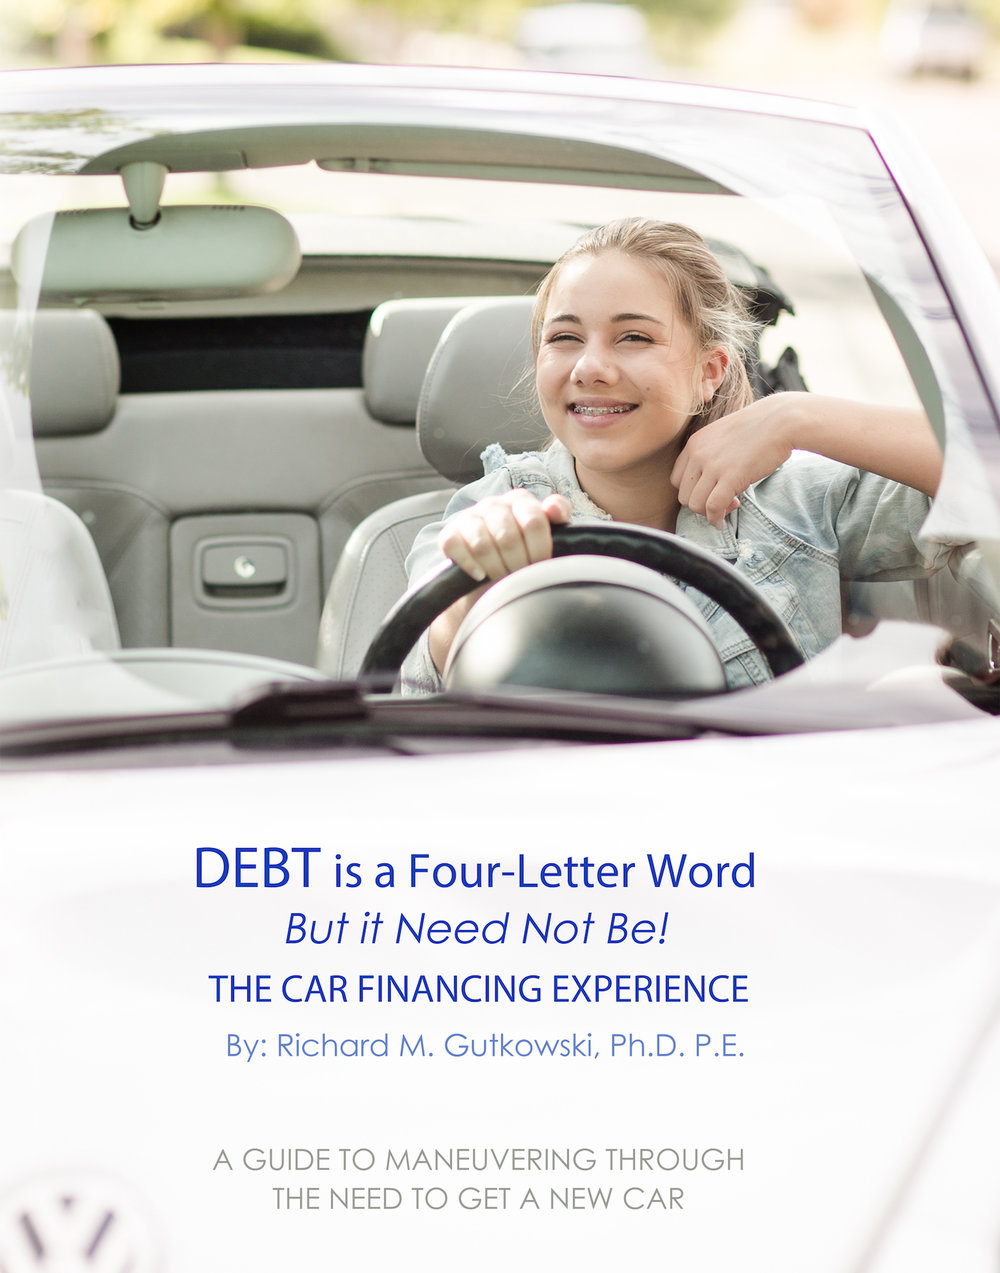 - DEBT is a Four-Letter Word - But It Need Not Be! is an on going book series (Vol, 1- THE COLLEGE EXPERIENCE, Vol. 2- THE CAR FINANCING EXPERIENCE; written in narrative, non-fiction style. It shares the hypothetical, but realistic, evolving fiscal development of a daughter (from 16-year old teenager onward) as her Dad teaches her in depth skills in wisely taking on debt. As her abilities for wise decision-making, timely borrowing and effective repayment of debt grow, so does the maturity of their relationship. Nicole's not so secret desire is to, one day, outsmart her Dad. I invite you to the peek in and see how close she comes to achieving that. You can drive along at your own pace and have fun!DEBT is a Four-Letter Word…But Need Not Be: THE COLLEGE EXPERIENCE is available on Amazon.com.